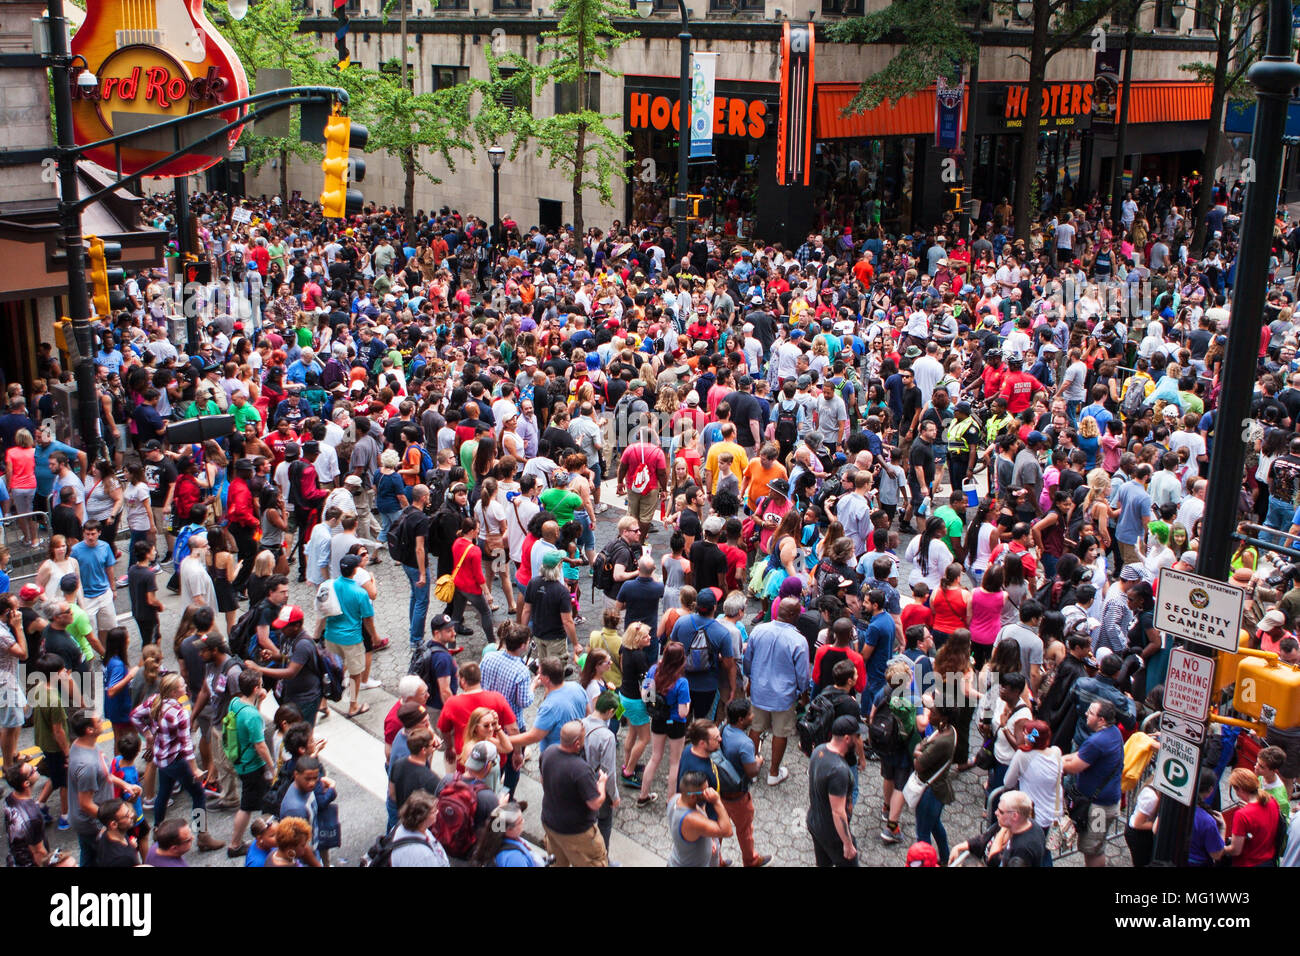 A huge crowd of spectators disperses on Peachtree Street following the conclusion of the annual Dragon Con Parade on September 3, 2016 in Atlanta, GA. - Stock Image